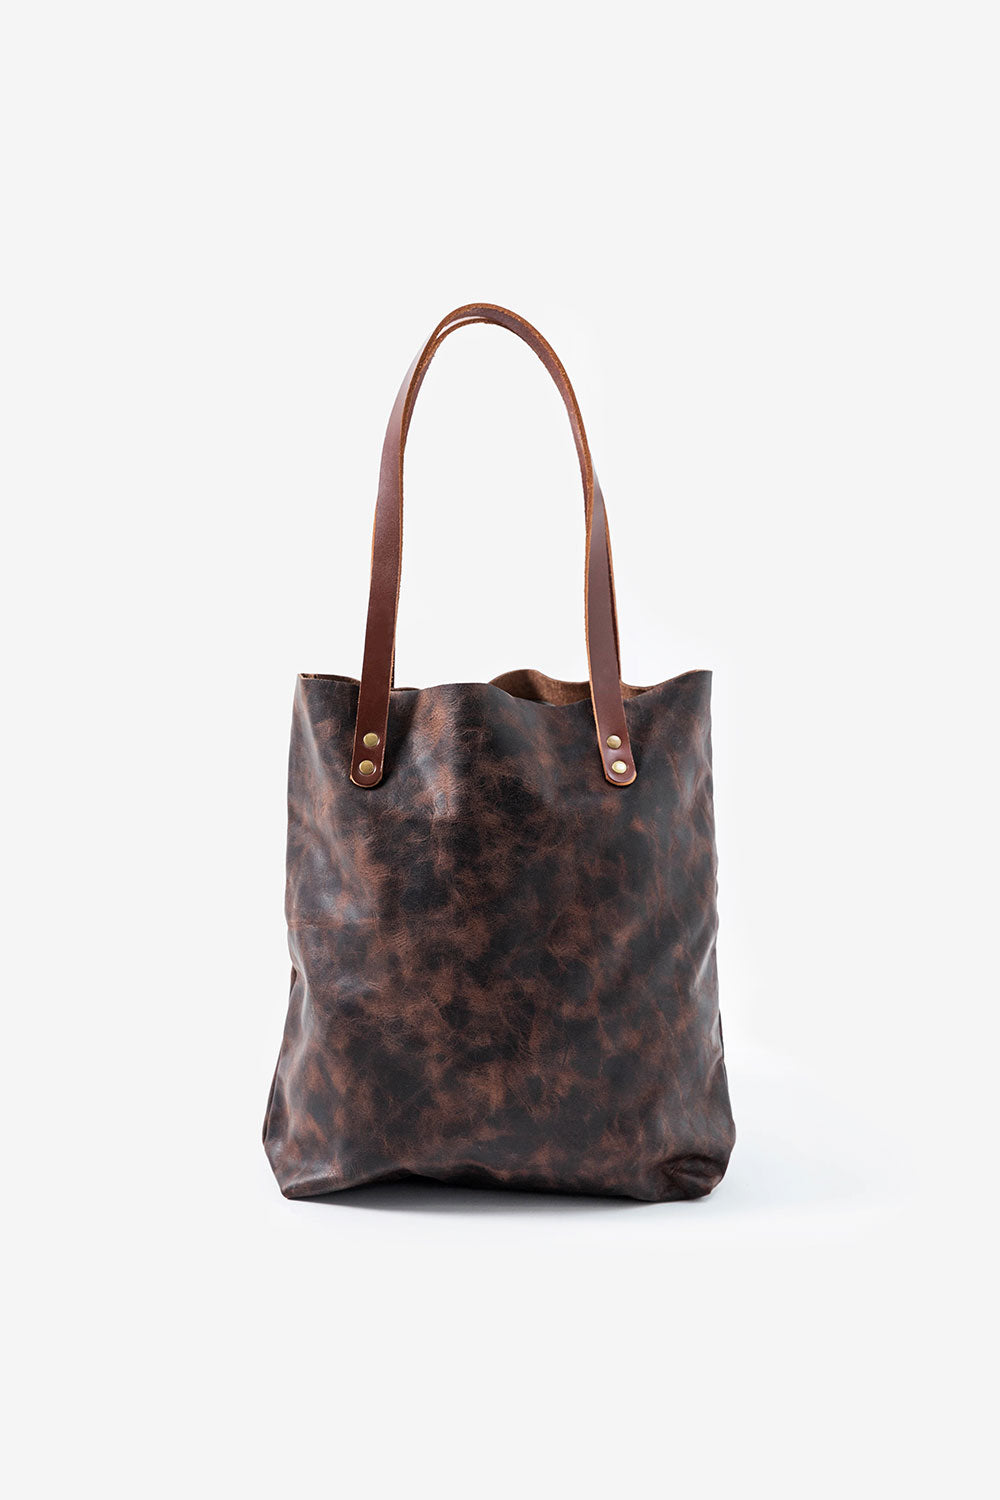 Alabama Chanin Hawks + Doves USA Made Leather Tote Brown Leather Bag with Strap